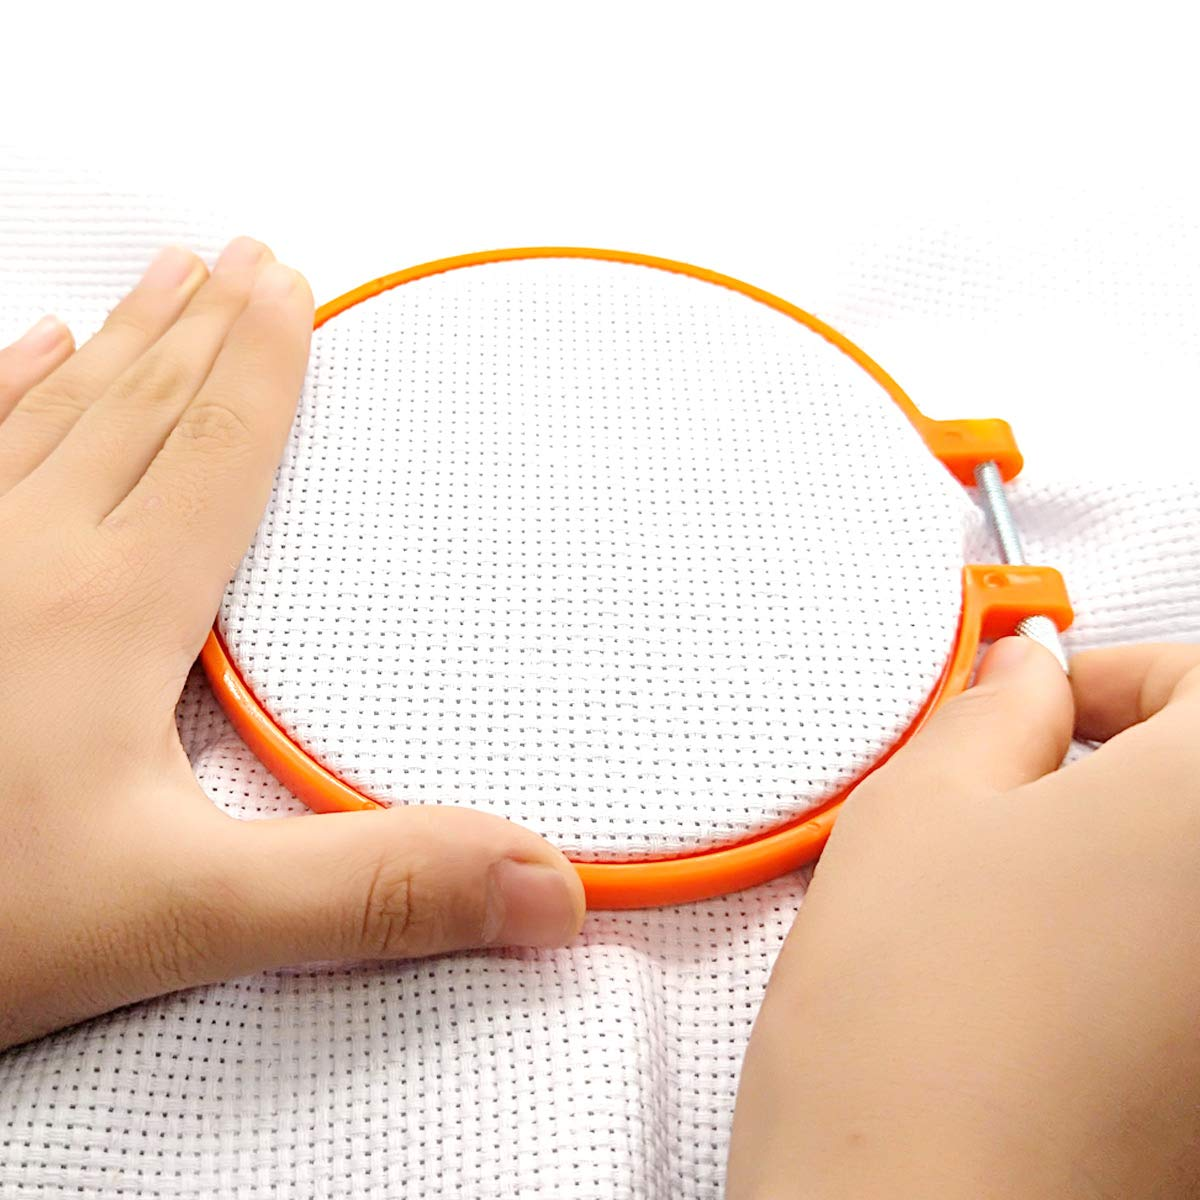 ONLM Embroidery Hoops Circle Cross Stitch Hoop Ring Set Plastic 5 Pieces 5 Sizes Multicolor for Art Craft Handy Sewing